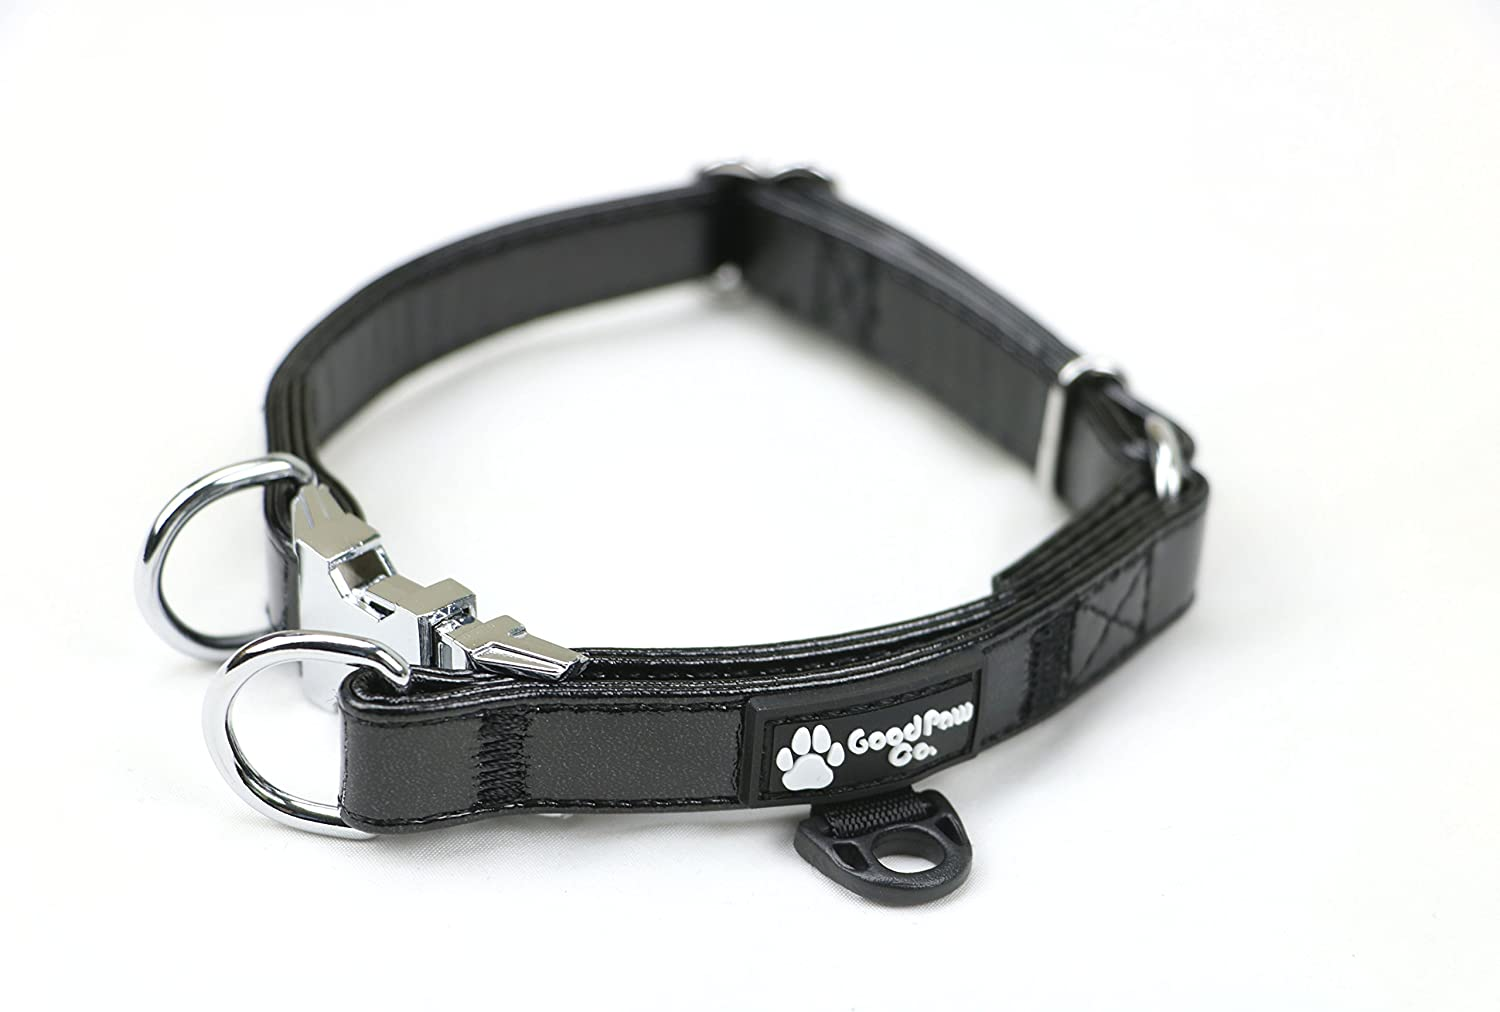 Black Leather Dog Collars Holographic with Double D Rings (XS)